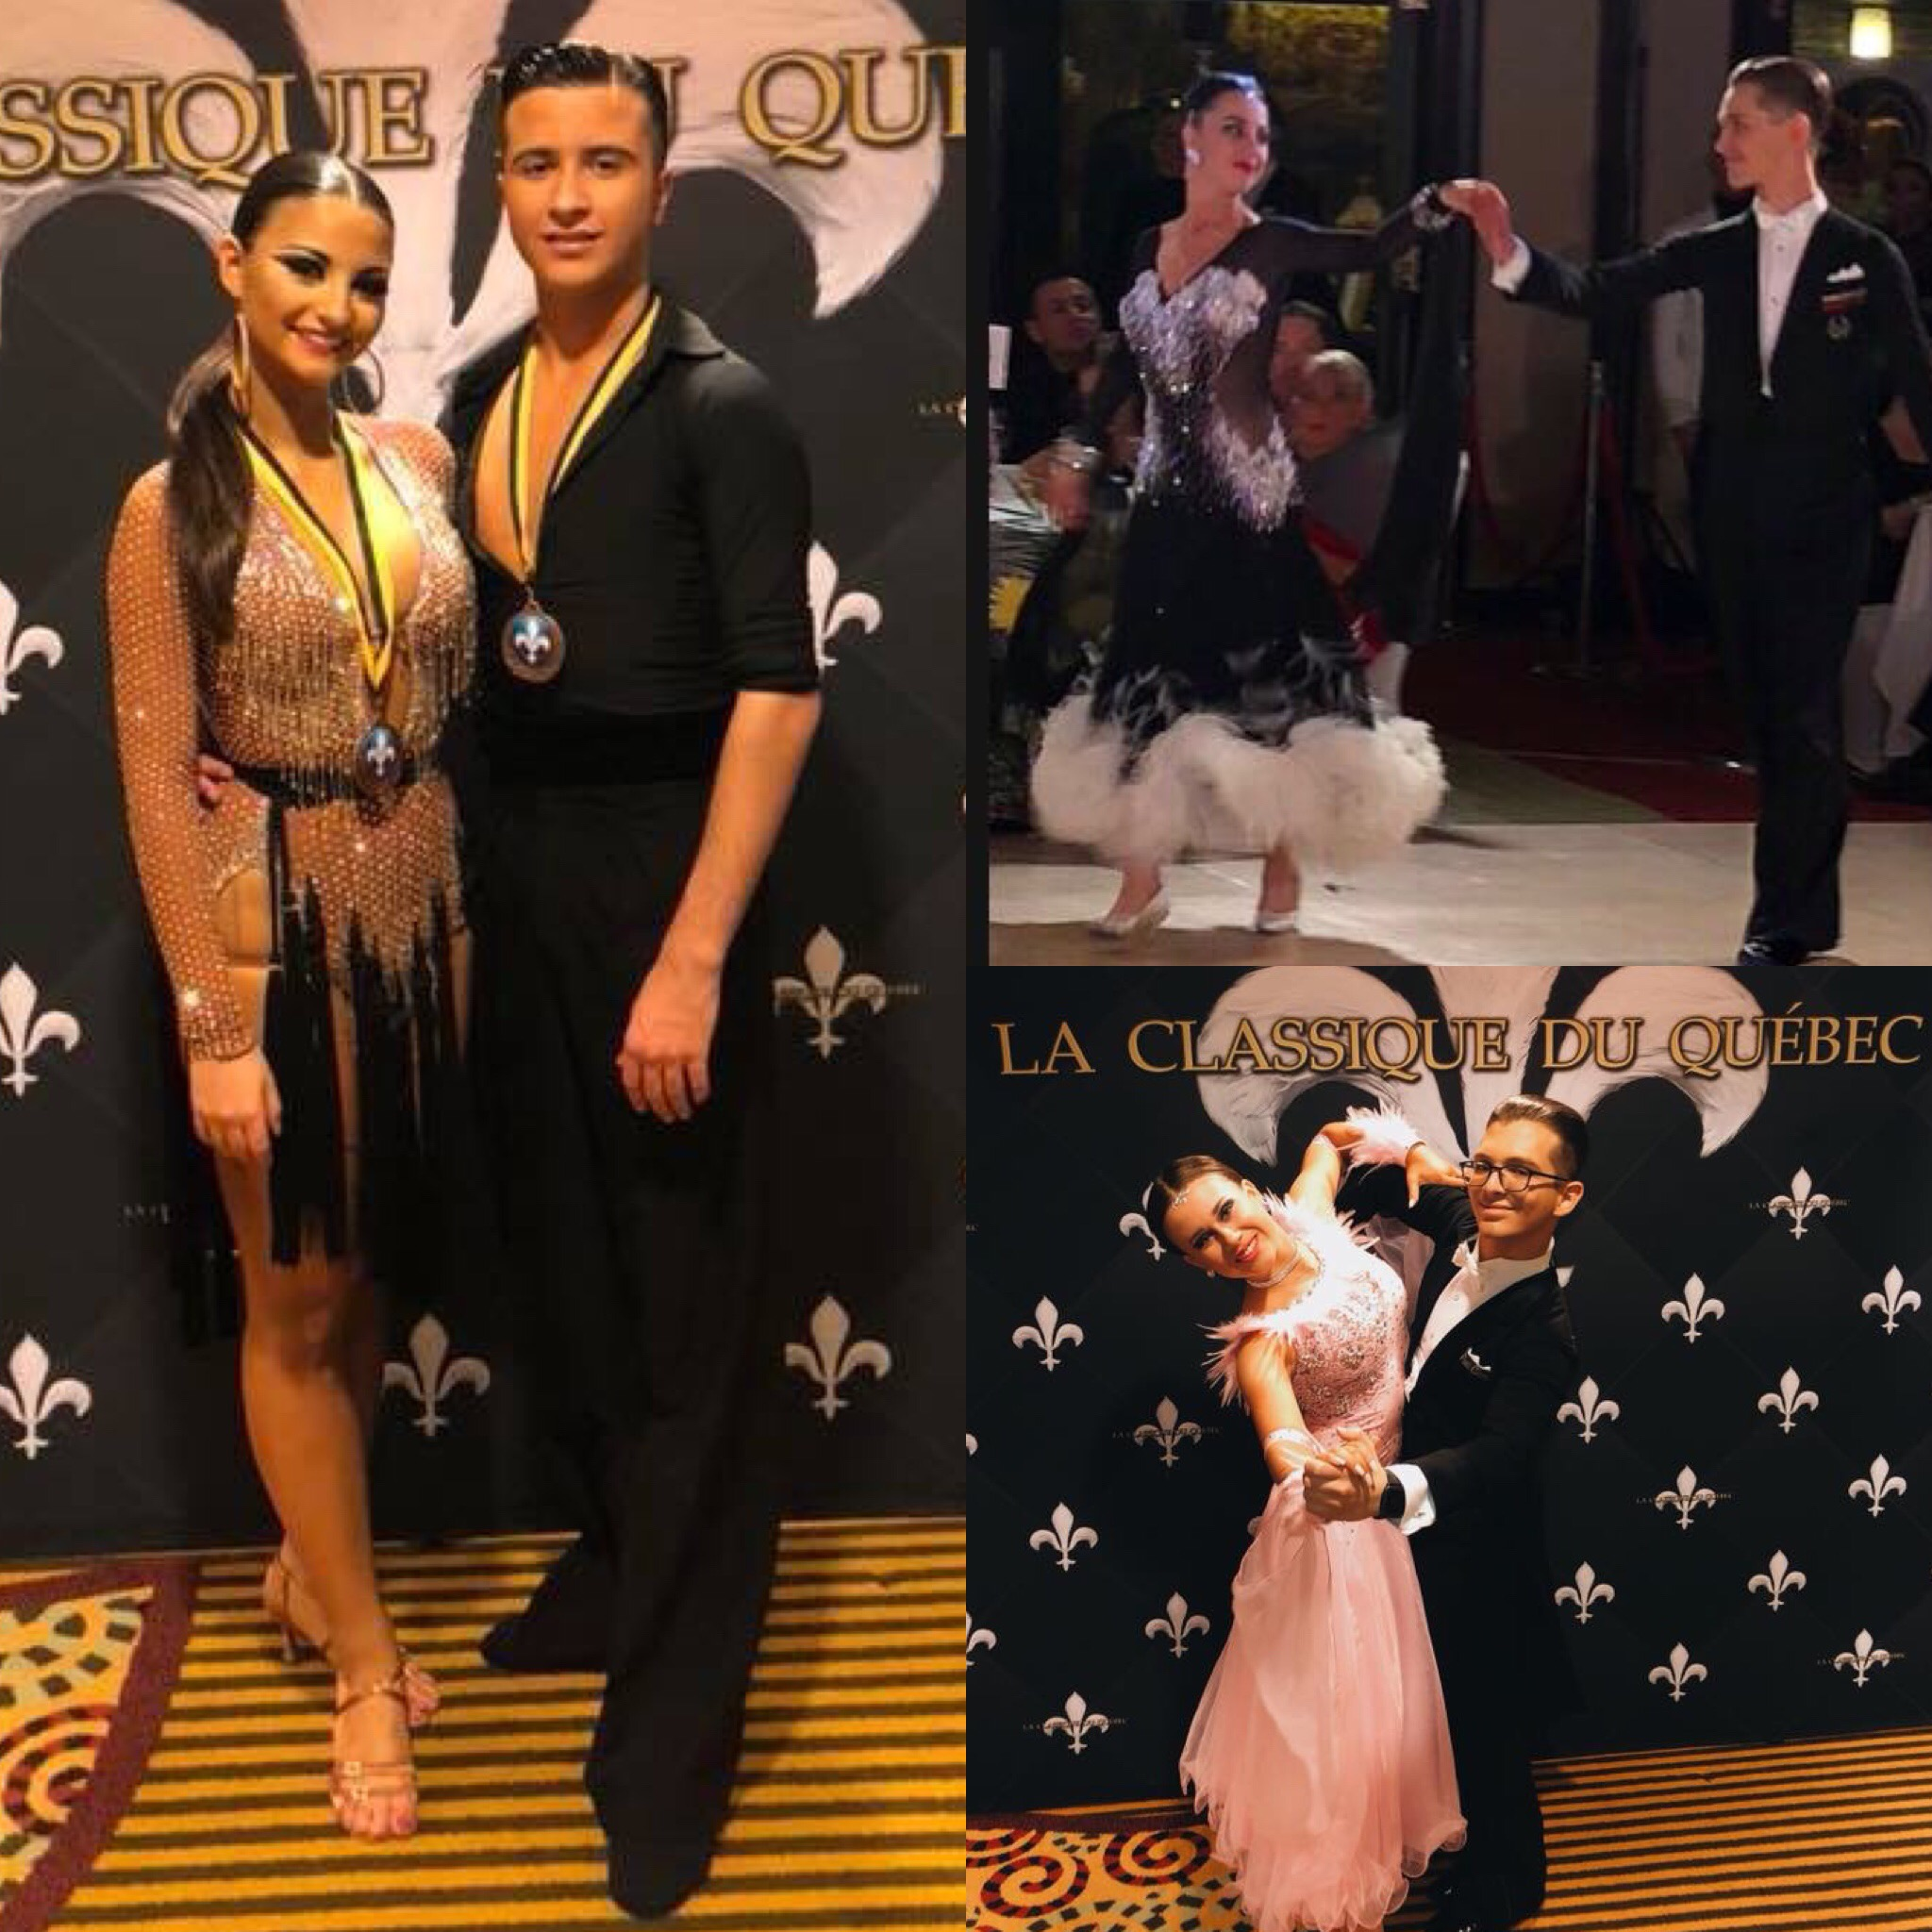 Congratulations to our couples who competed at La Classique du Quebec!